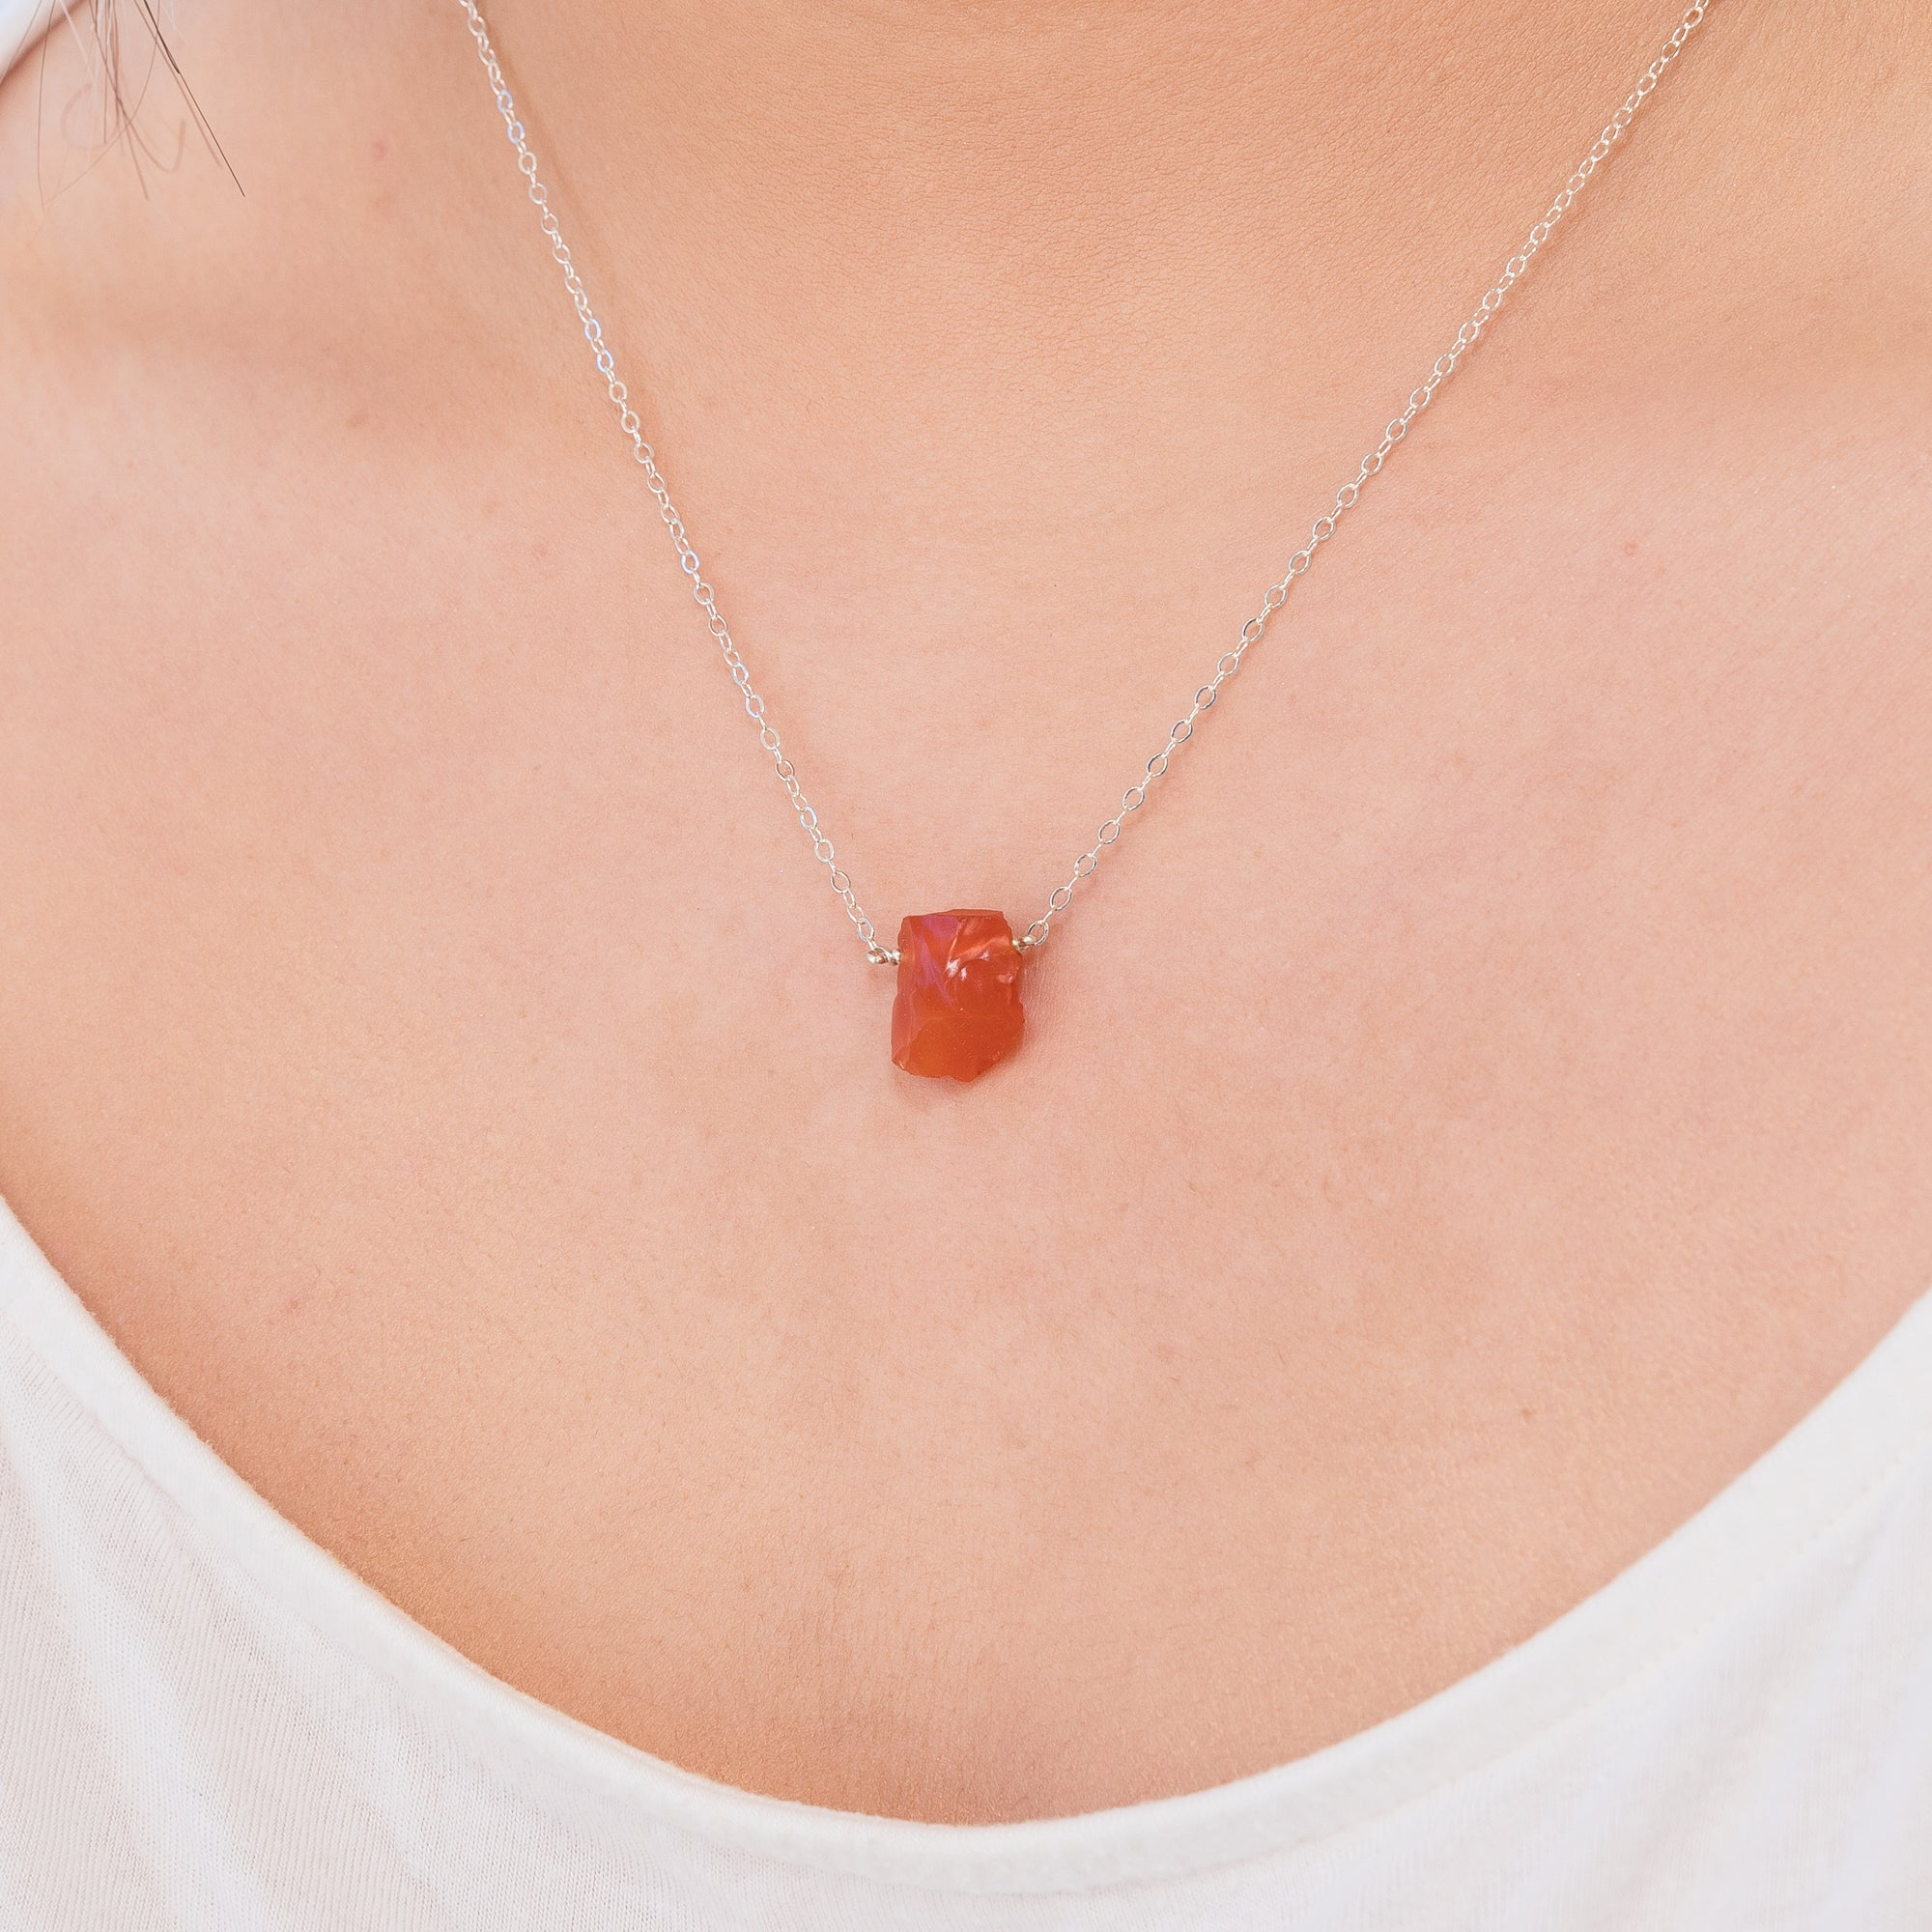 Raw Carnelian Necklace